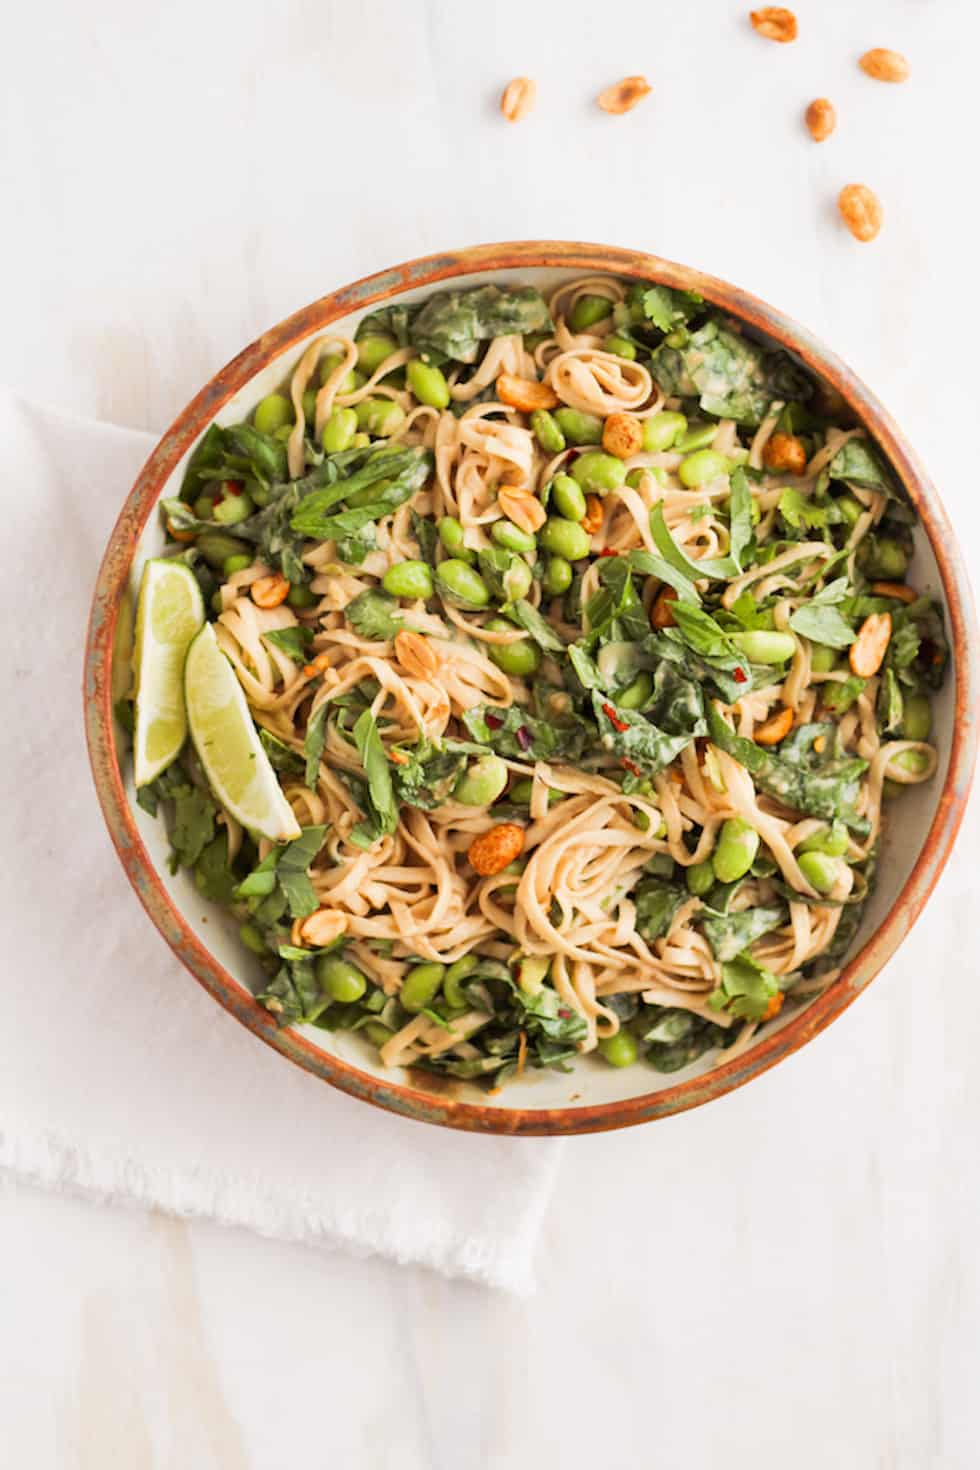 15-minute easy vegetarian peanut noodles in brown ceramic dish.